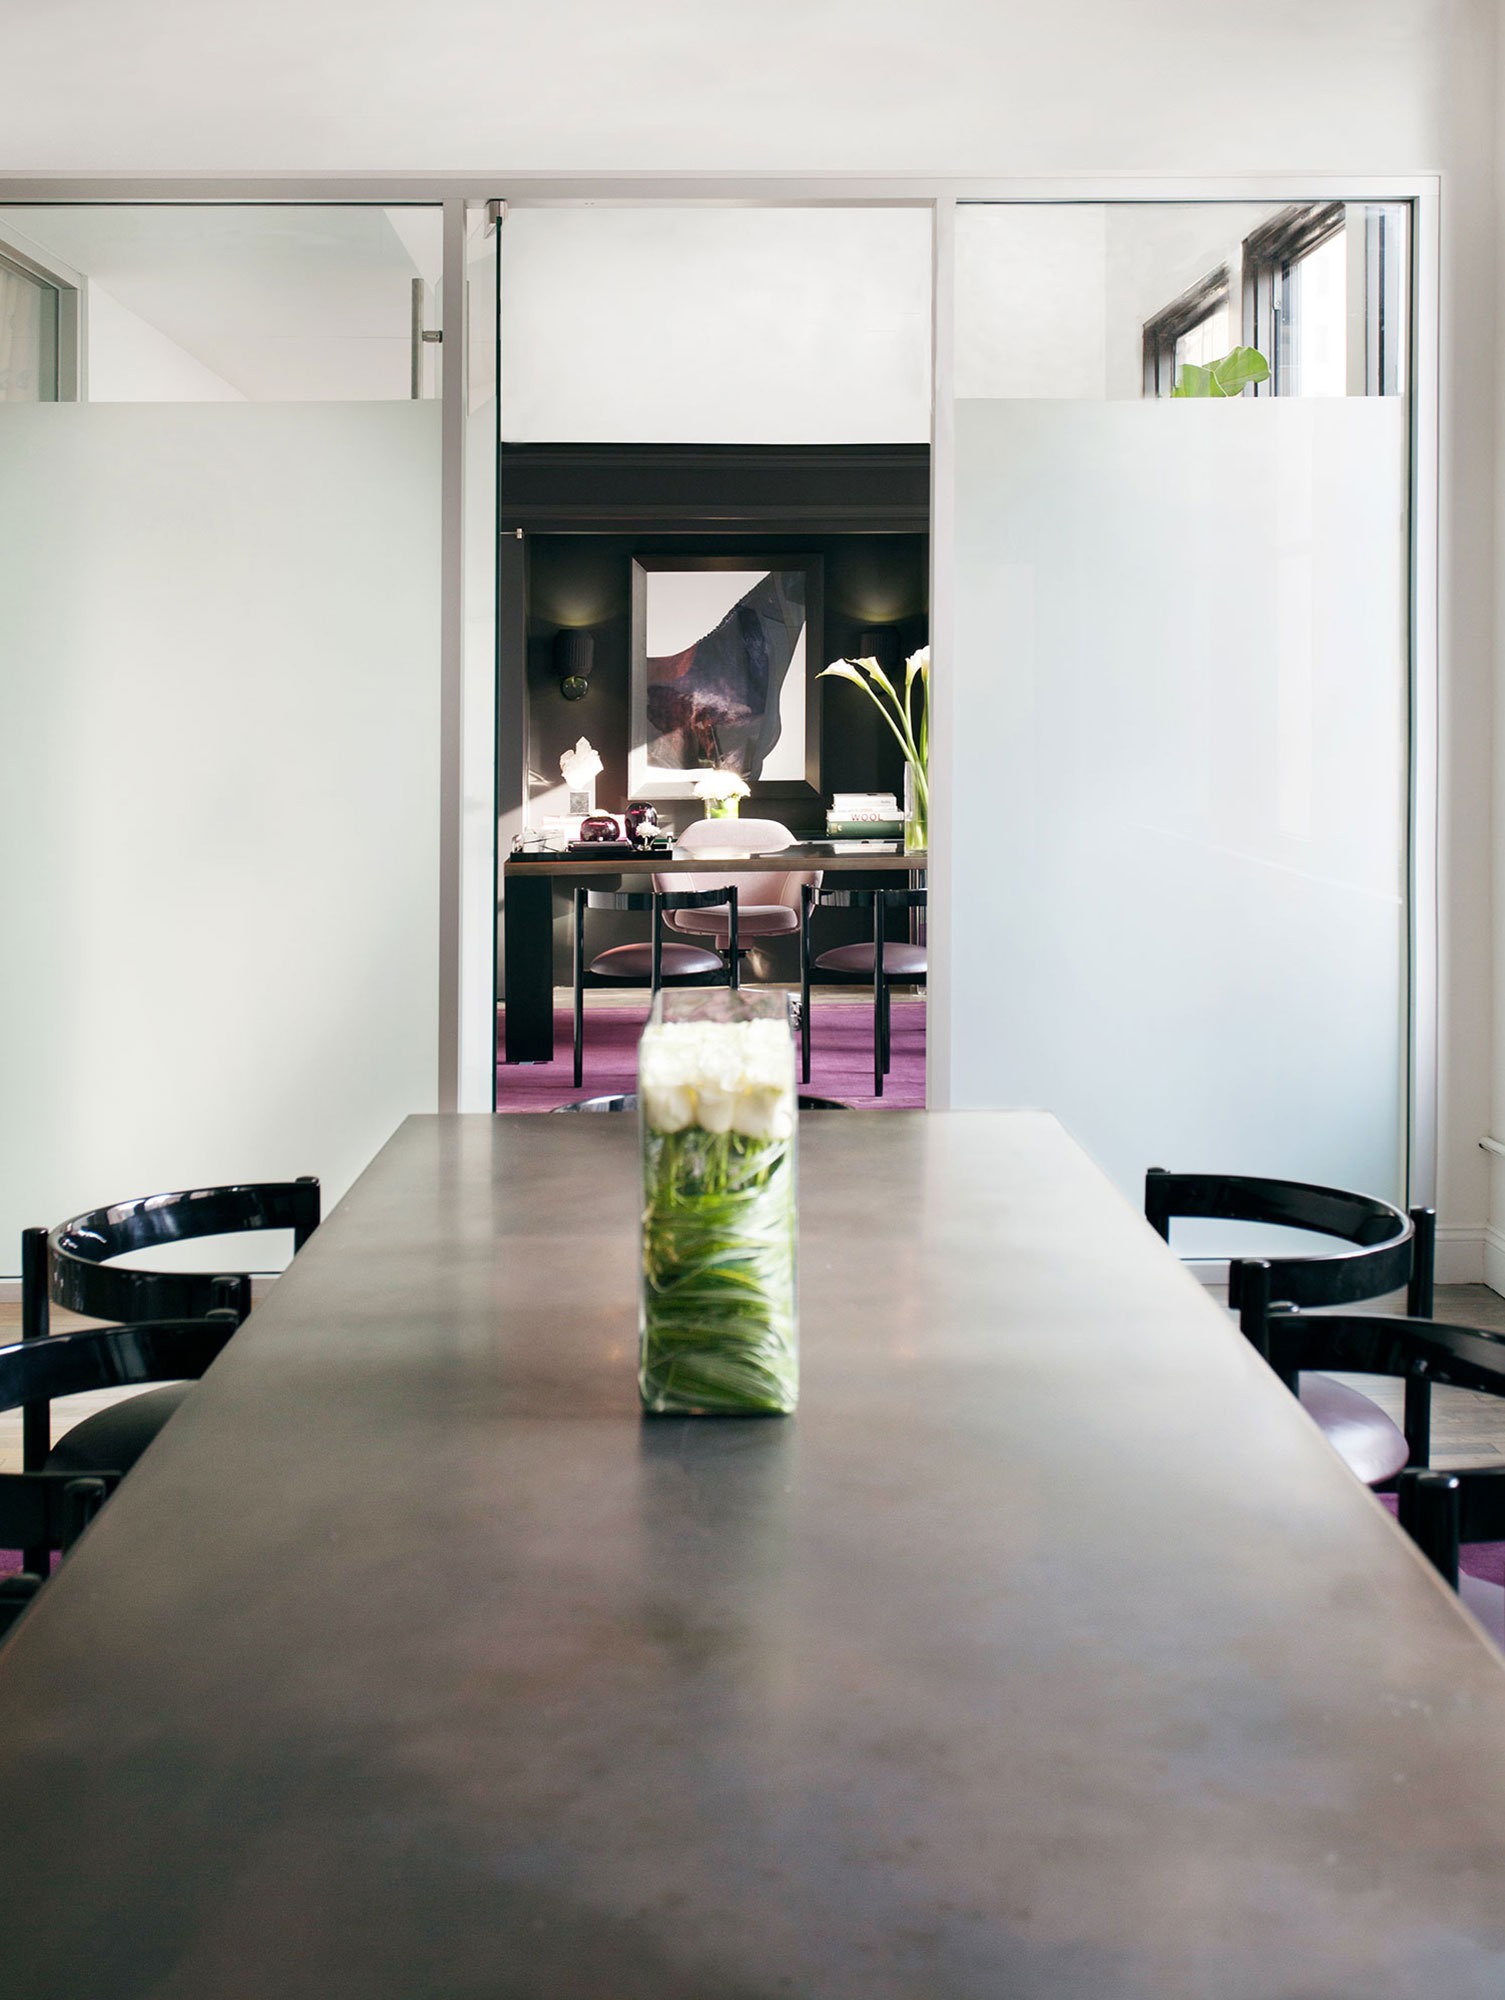 Black chairs surround a sleek conference table near the office's reception area.